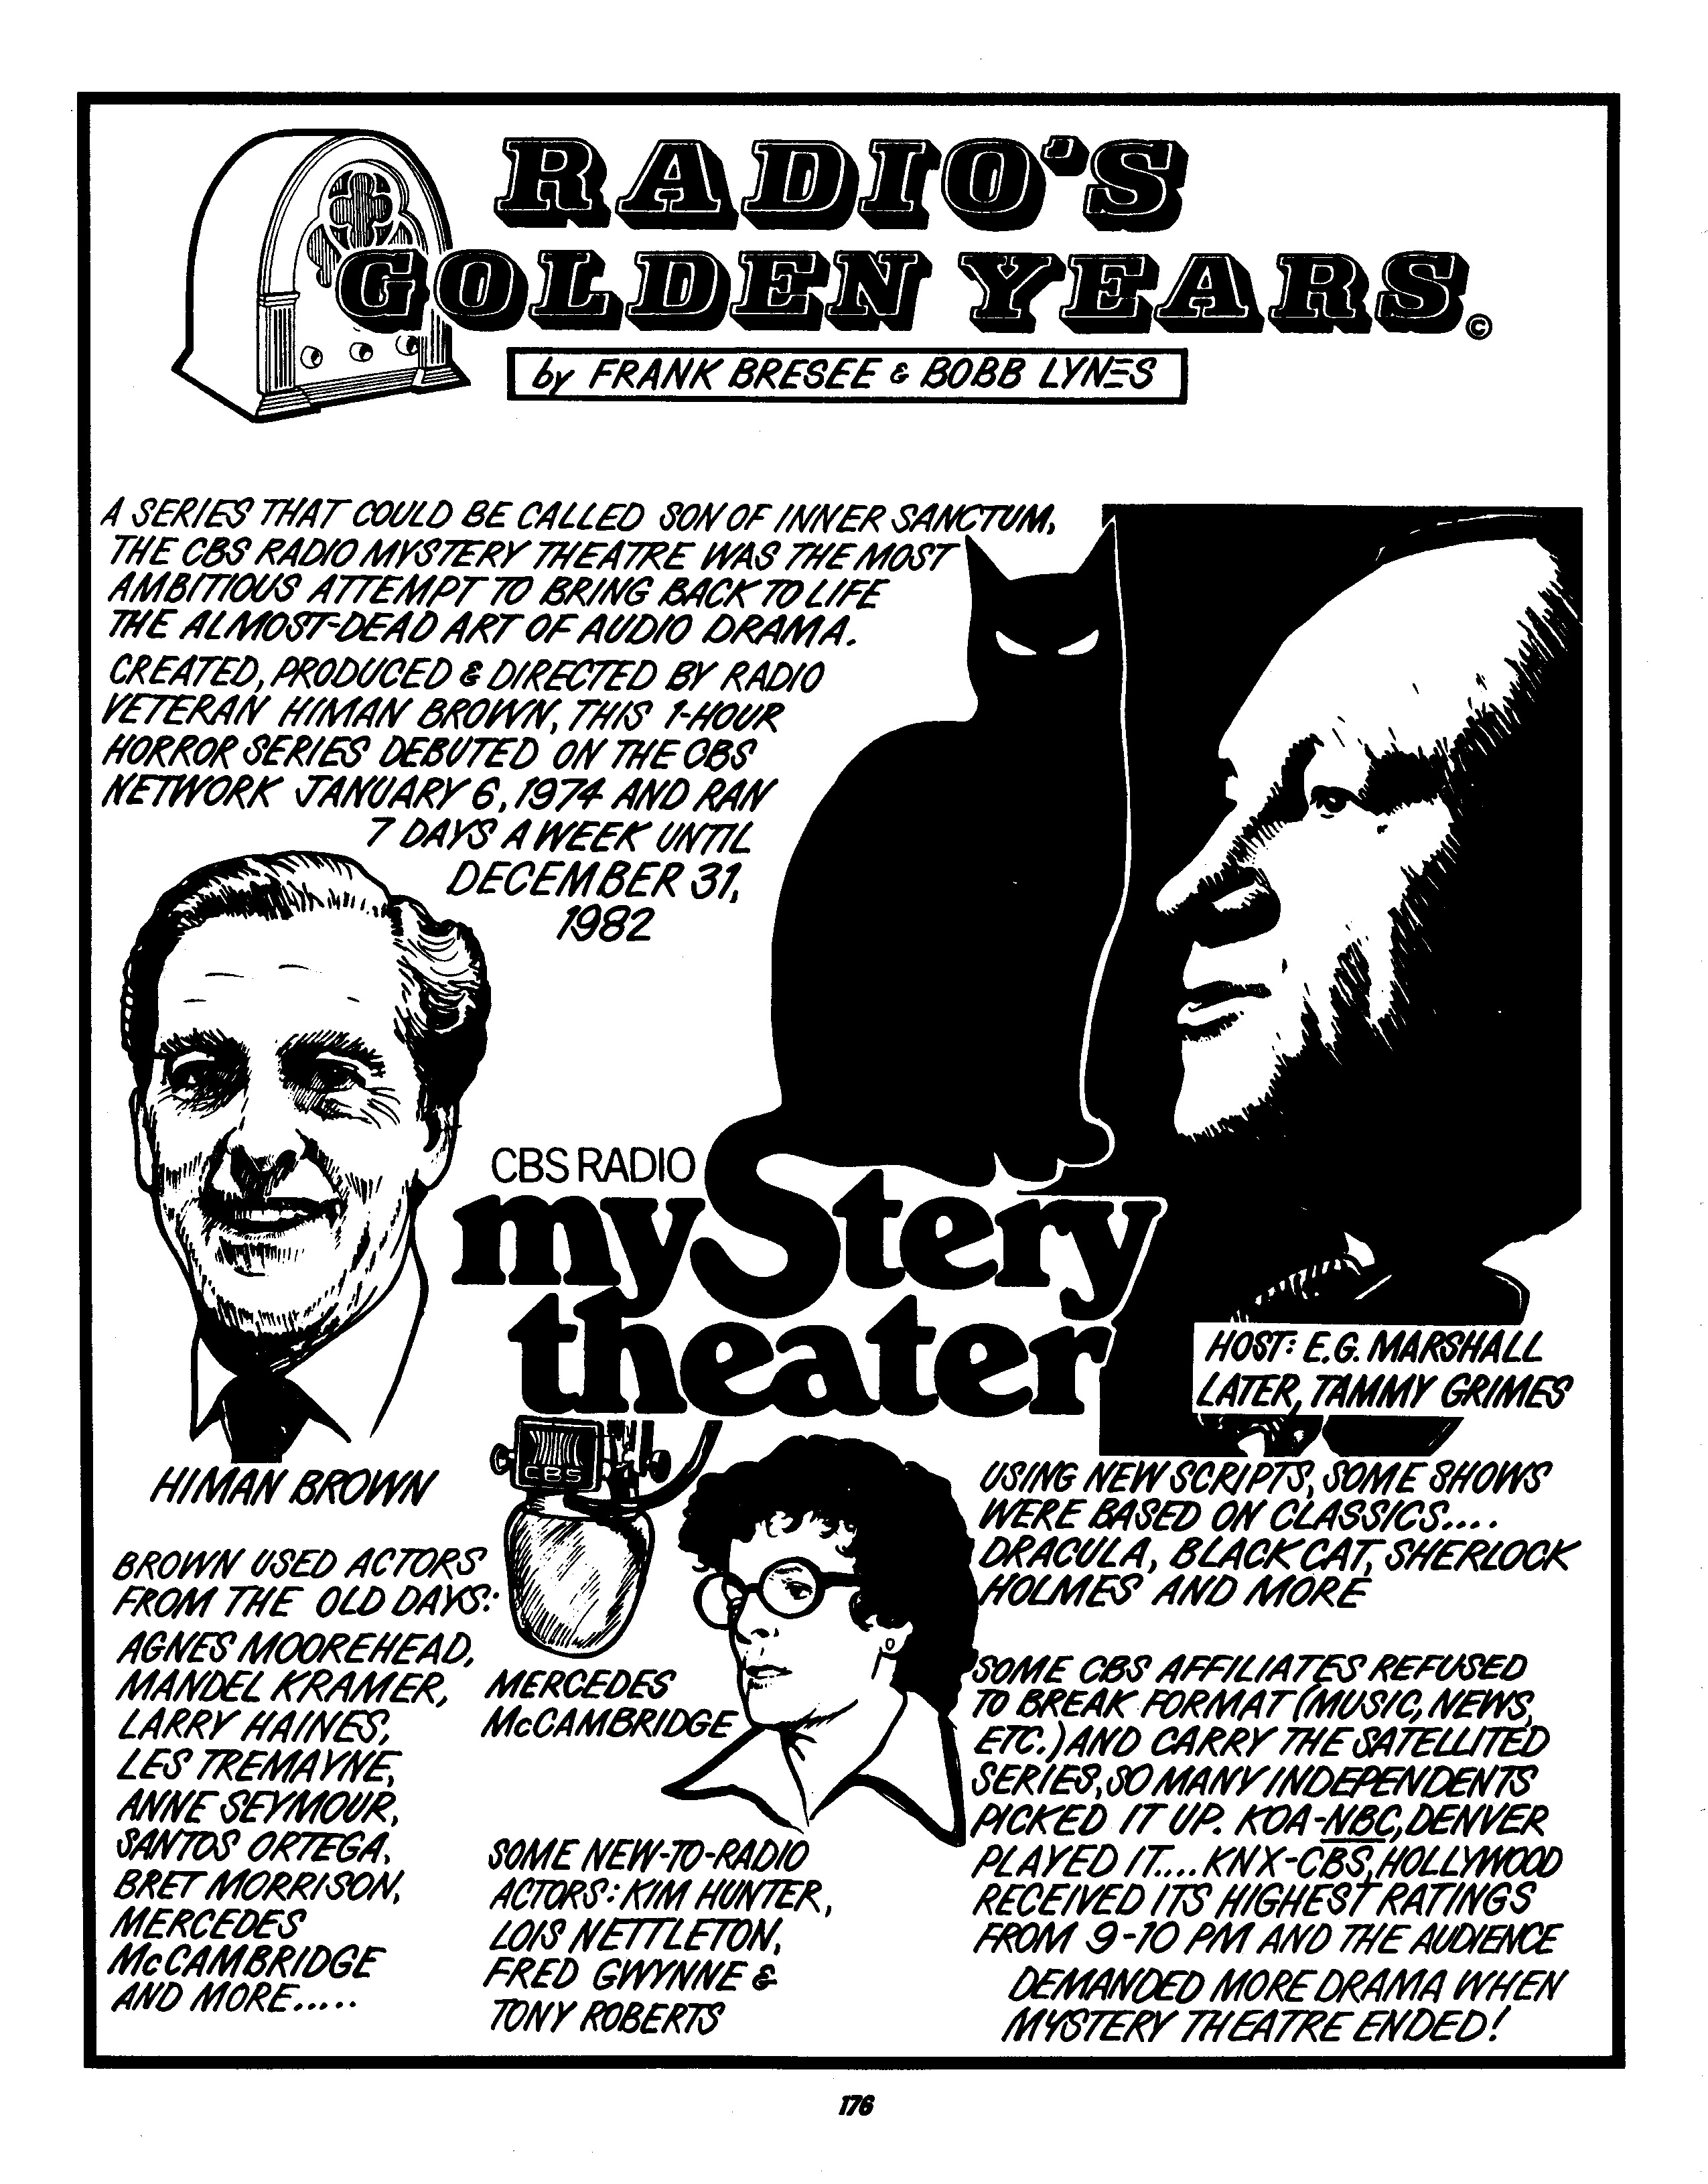 Mystery Theater Cbc | Thriller | Old Time Radio Downloads